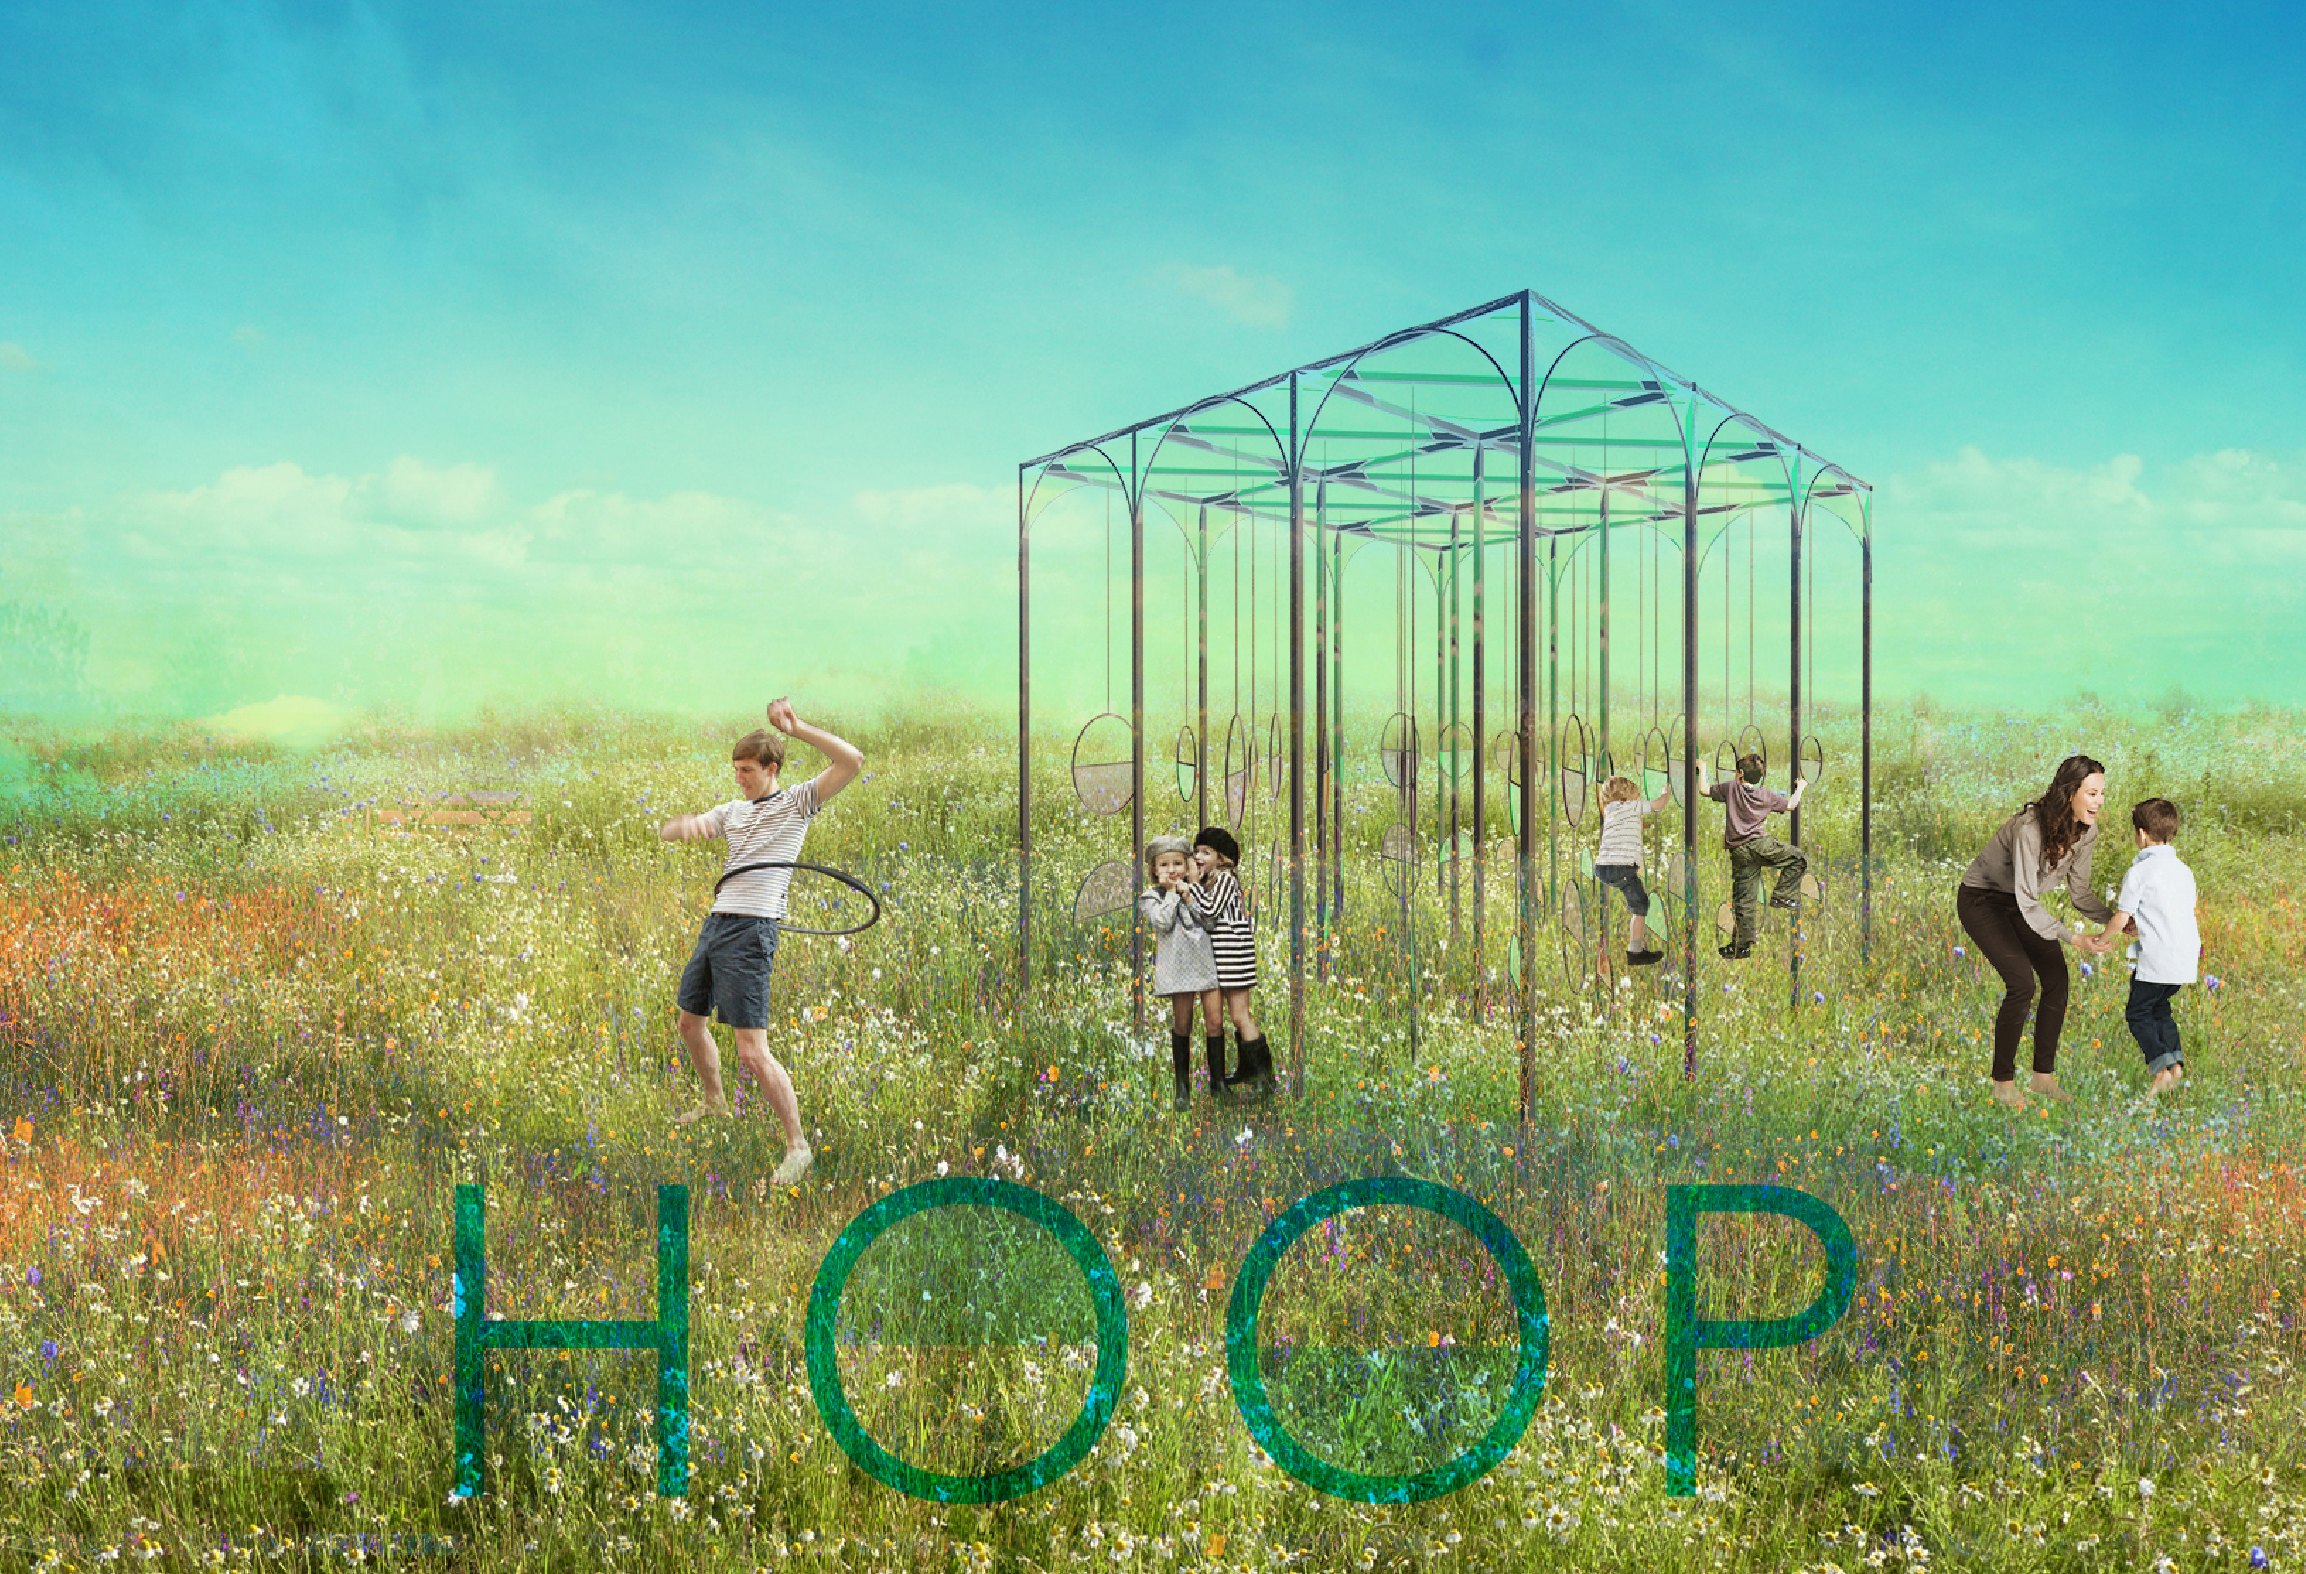 Part of our Eat, Play, Learn Outdoor Series for Schools and learning Facilities :HOOP rethinks and redesigns the traditional playground. The project is a simple structure that allows kids to determine how they use it in their own way, using their imagination. The space is flexible and is able to change its primary function through the addition and subtraction of elements such as the hanging hoop swing structures and mesh walls. The simplicity of the structure and its use of repetition allows HOOP to be a less expensive option for a play/shade structure. Its configuration with hanging colourful hoops induces play and wonder through colour and repetition, creating a kaleidoscopic or maze-like environment. Although HOOP can act as a playground, it is also a shade structure that can be used for outdoor learning, eating or events.